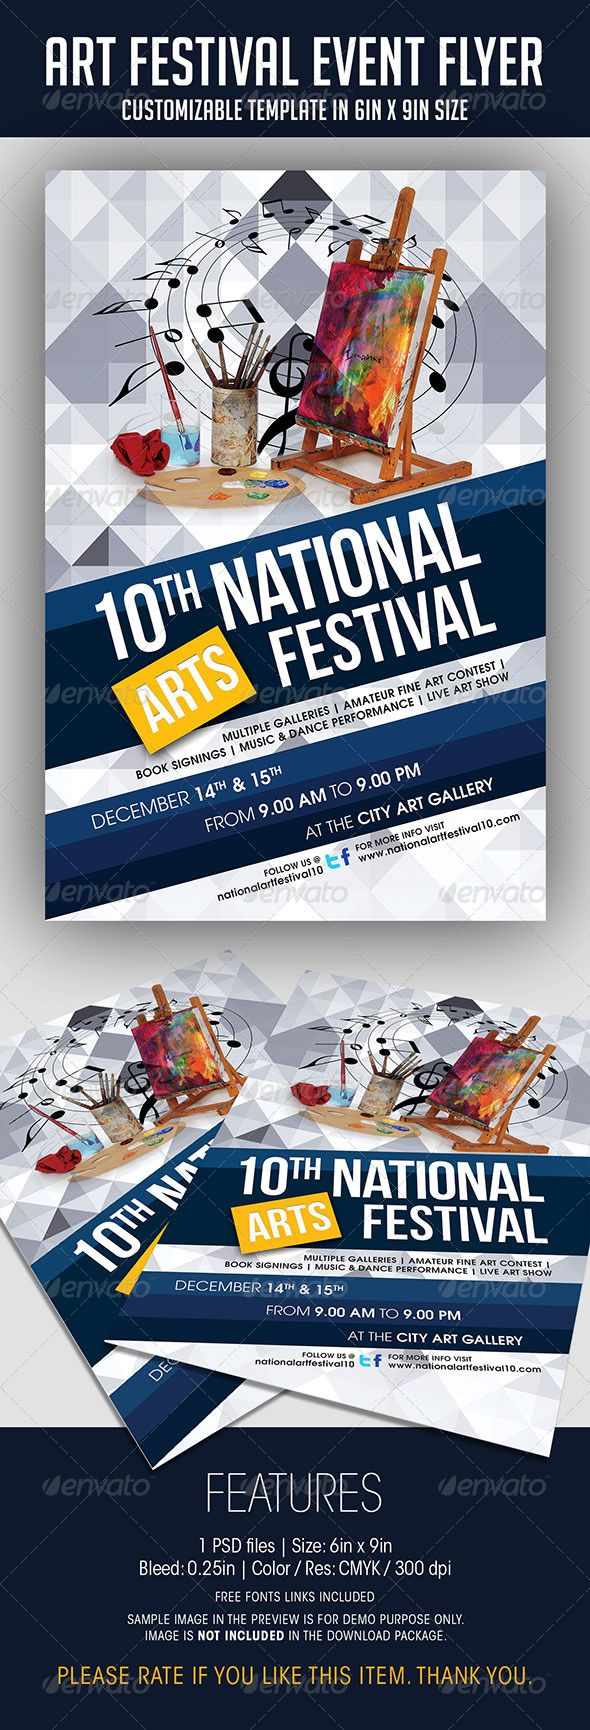 Arts Festival Event Flyer. Print-templates Flyers Events. To help discover this advertisement, art, blue, brush, business flyer, business promotion, canvas, celebration, contest, easel, event, event flyer, event poster, festival, fine art, flyer template, gallery, information, music, pattern, poster, poster template, promotion, promotional, soulmemoria, and texture.